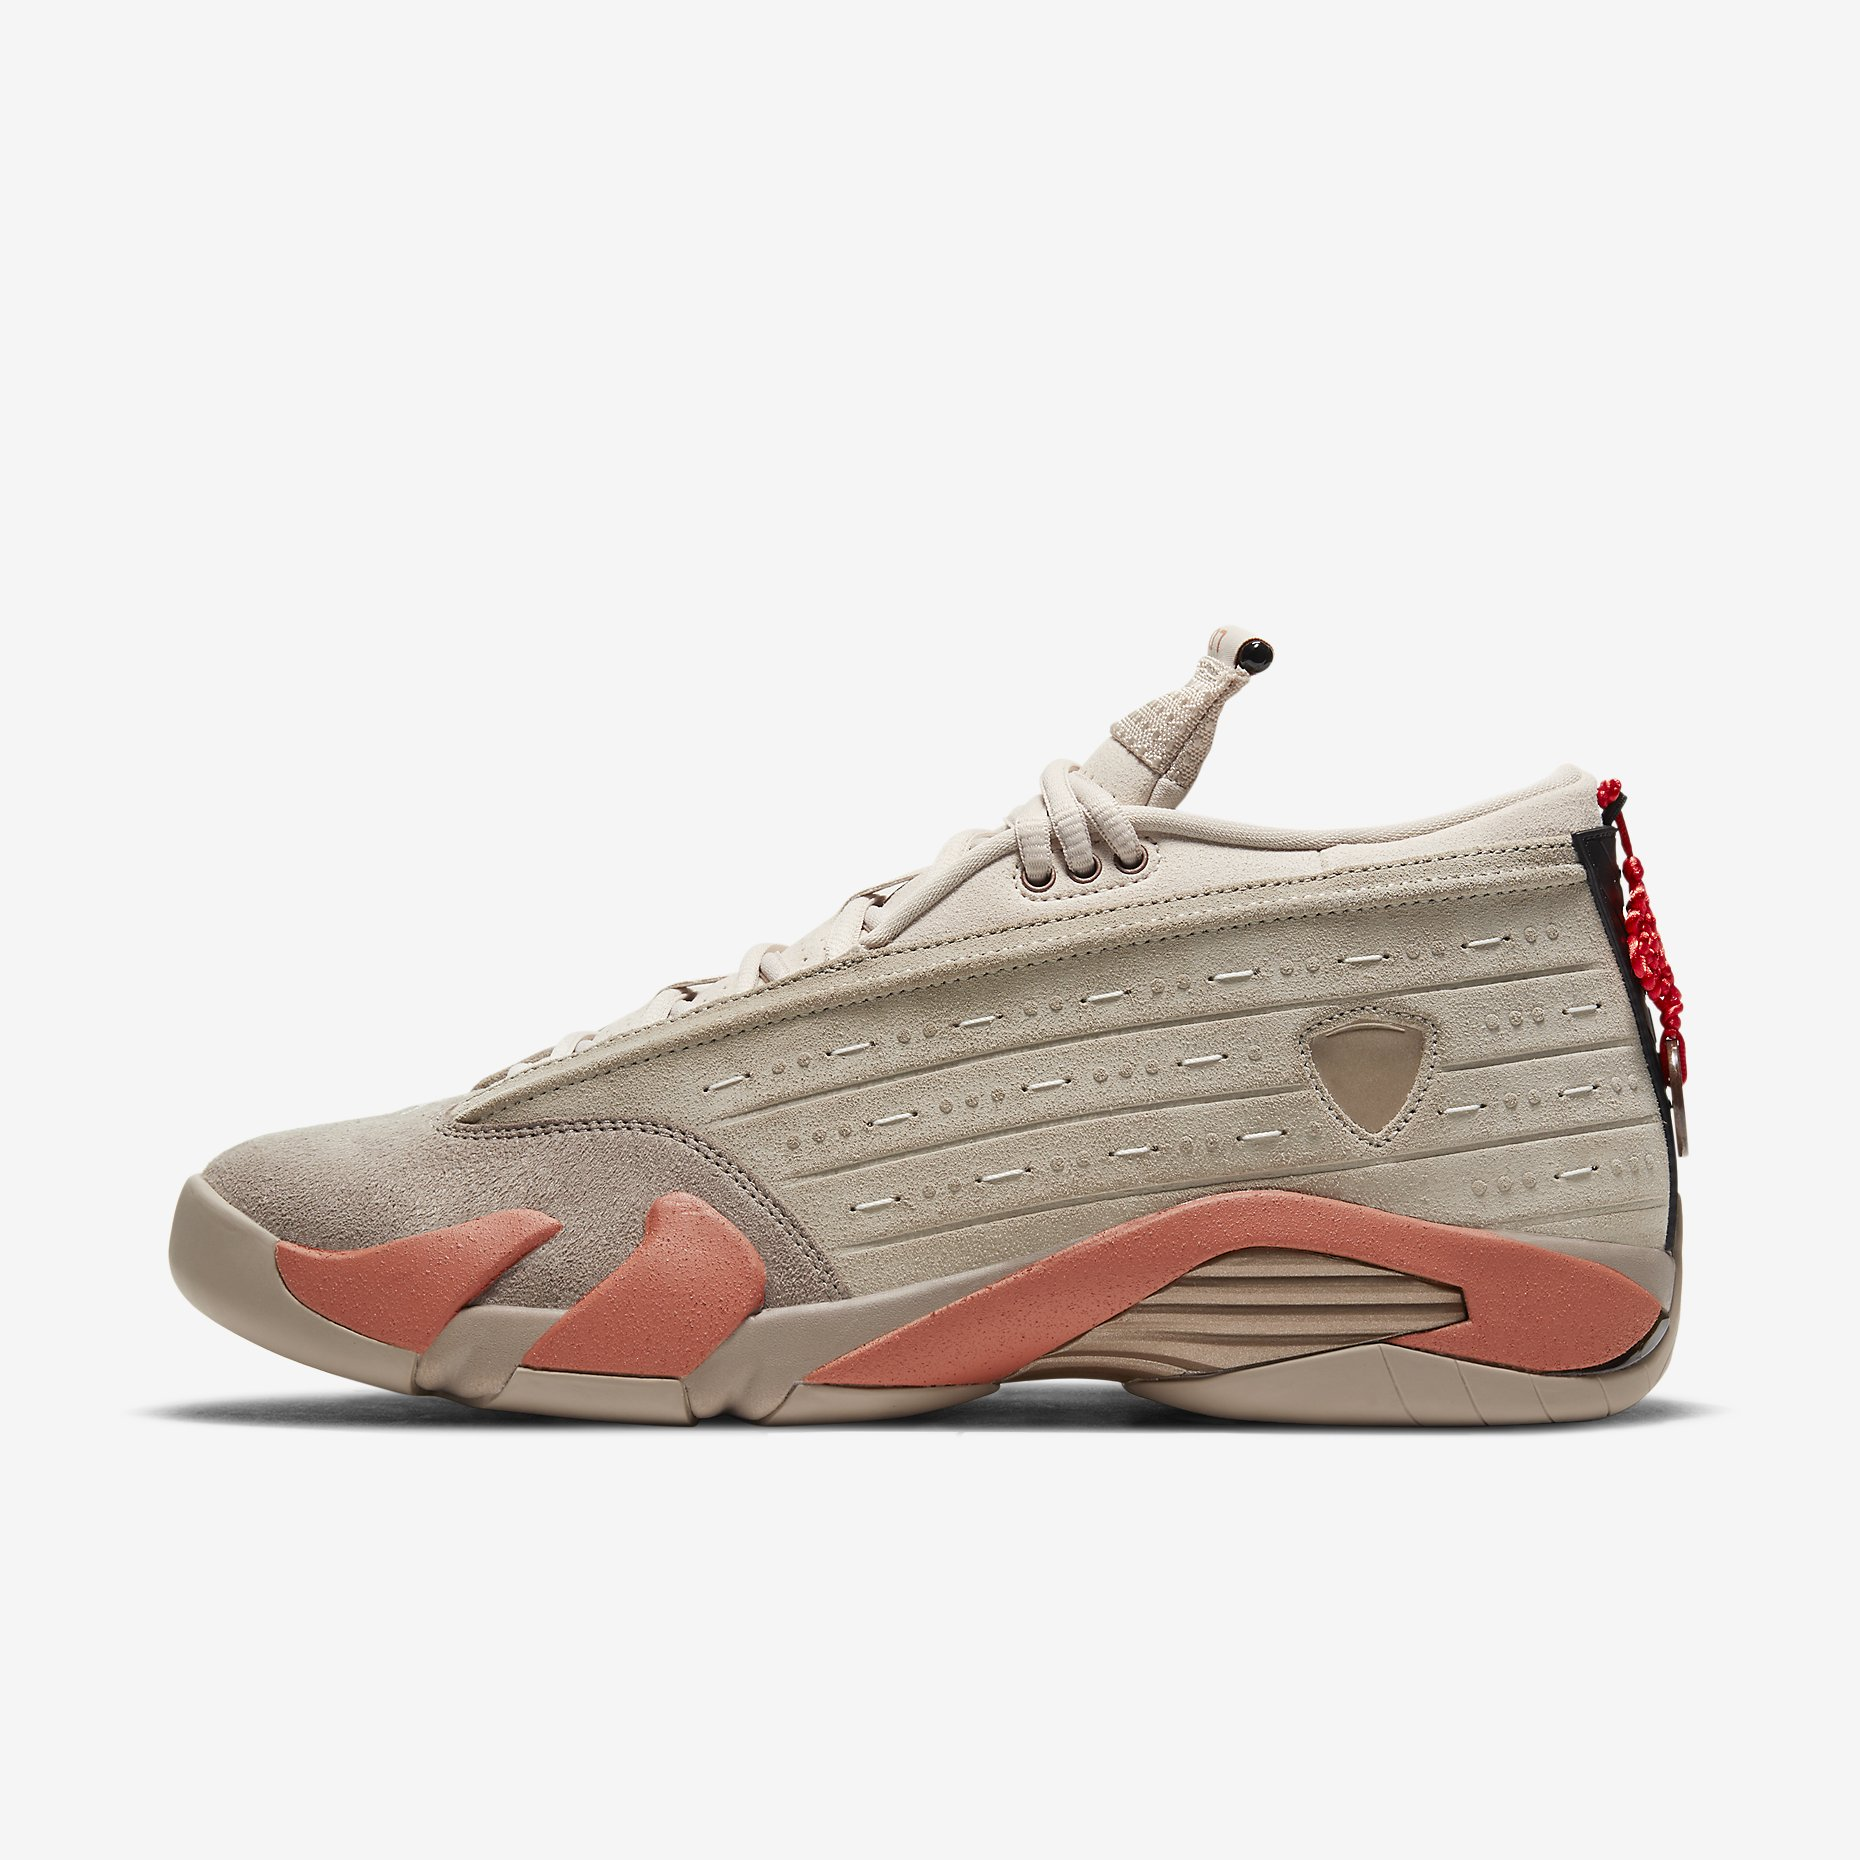 CLOT x Air Jordan 14 Retro Low 'Terracotta'}